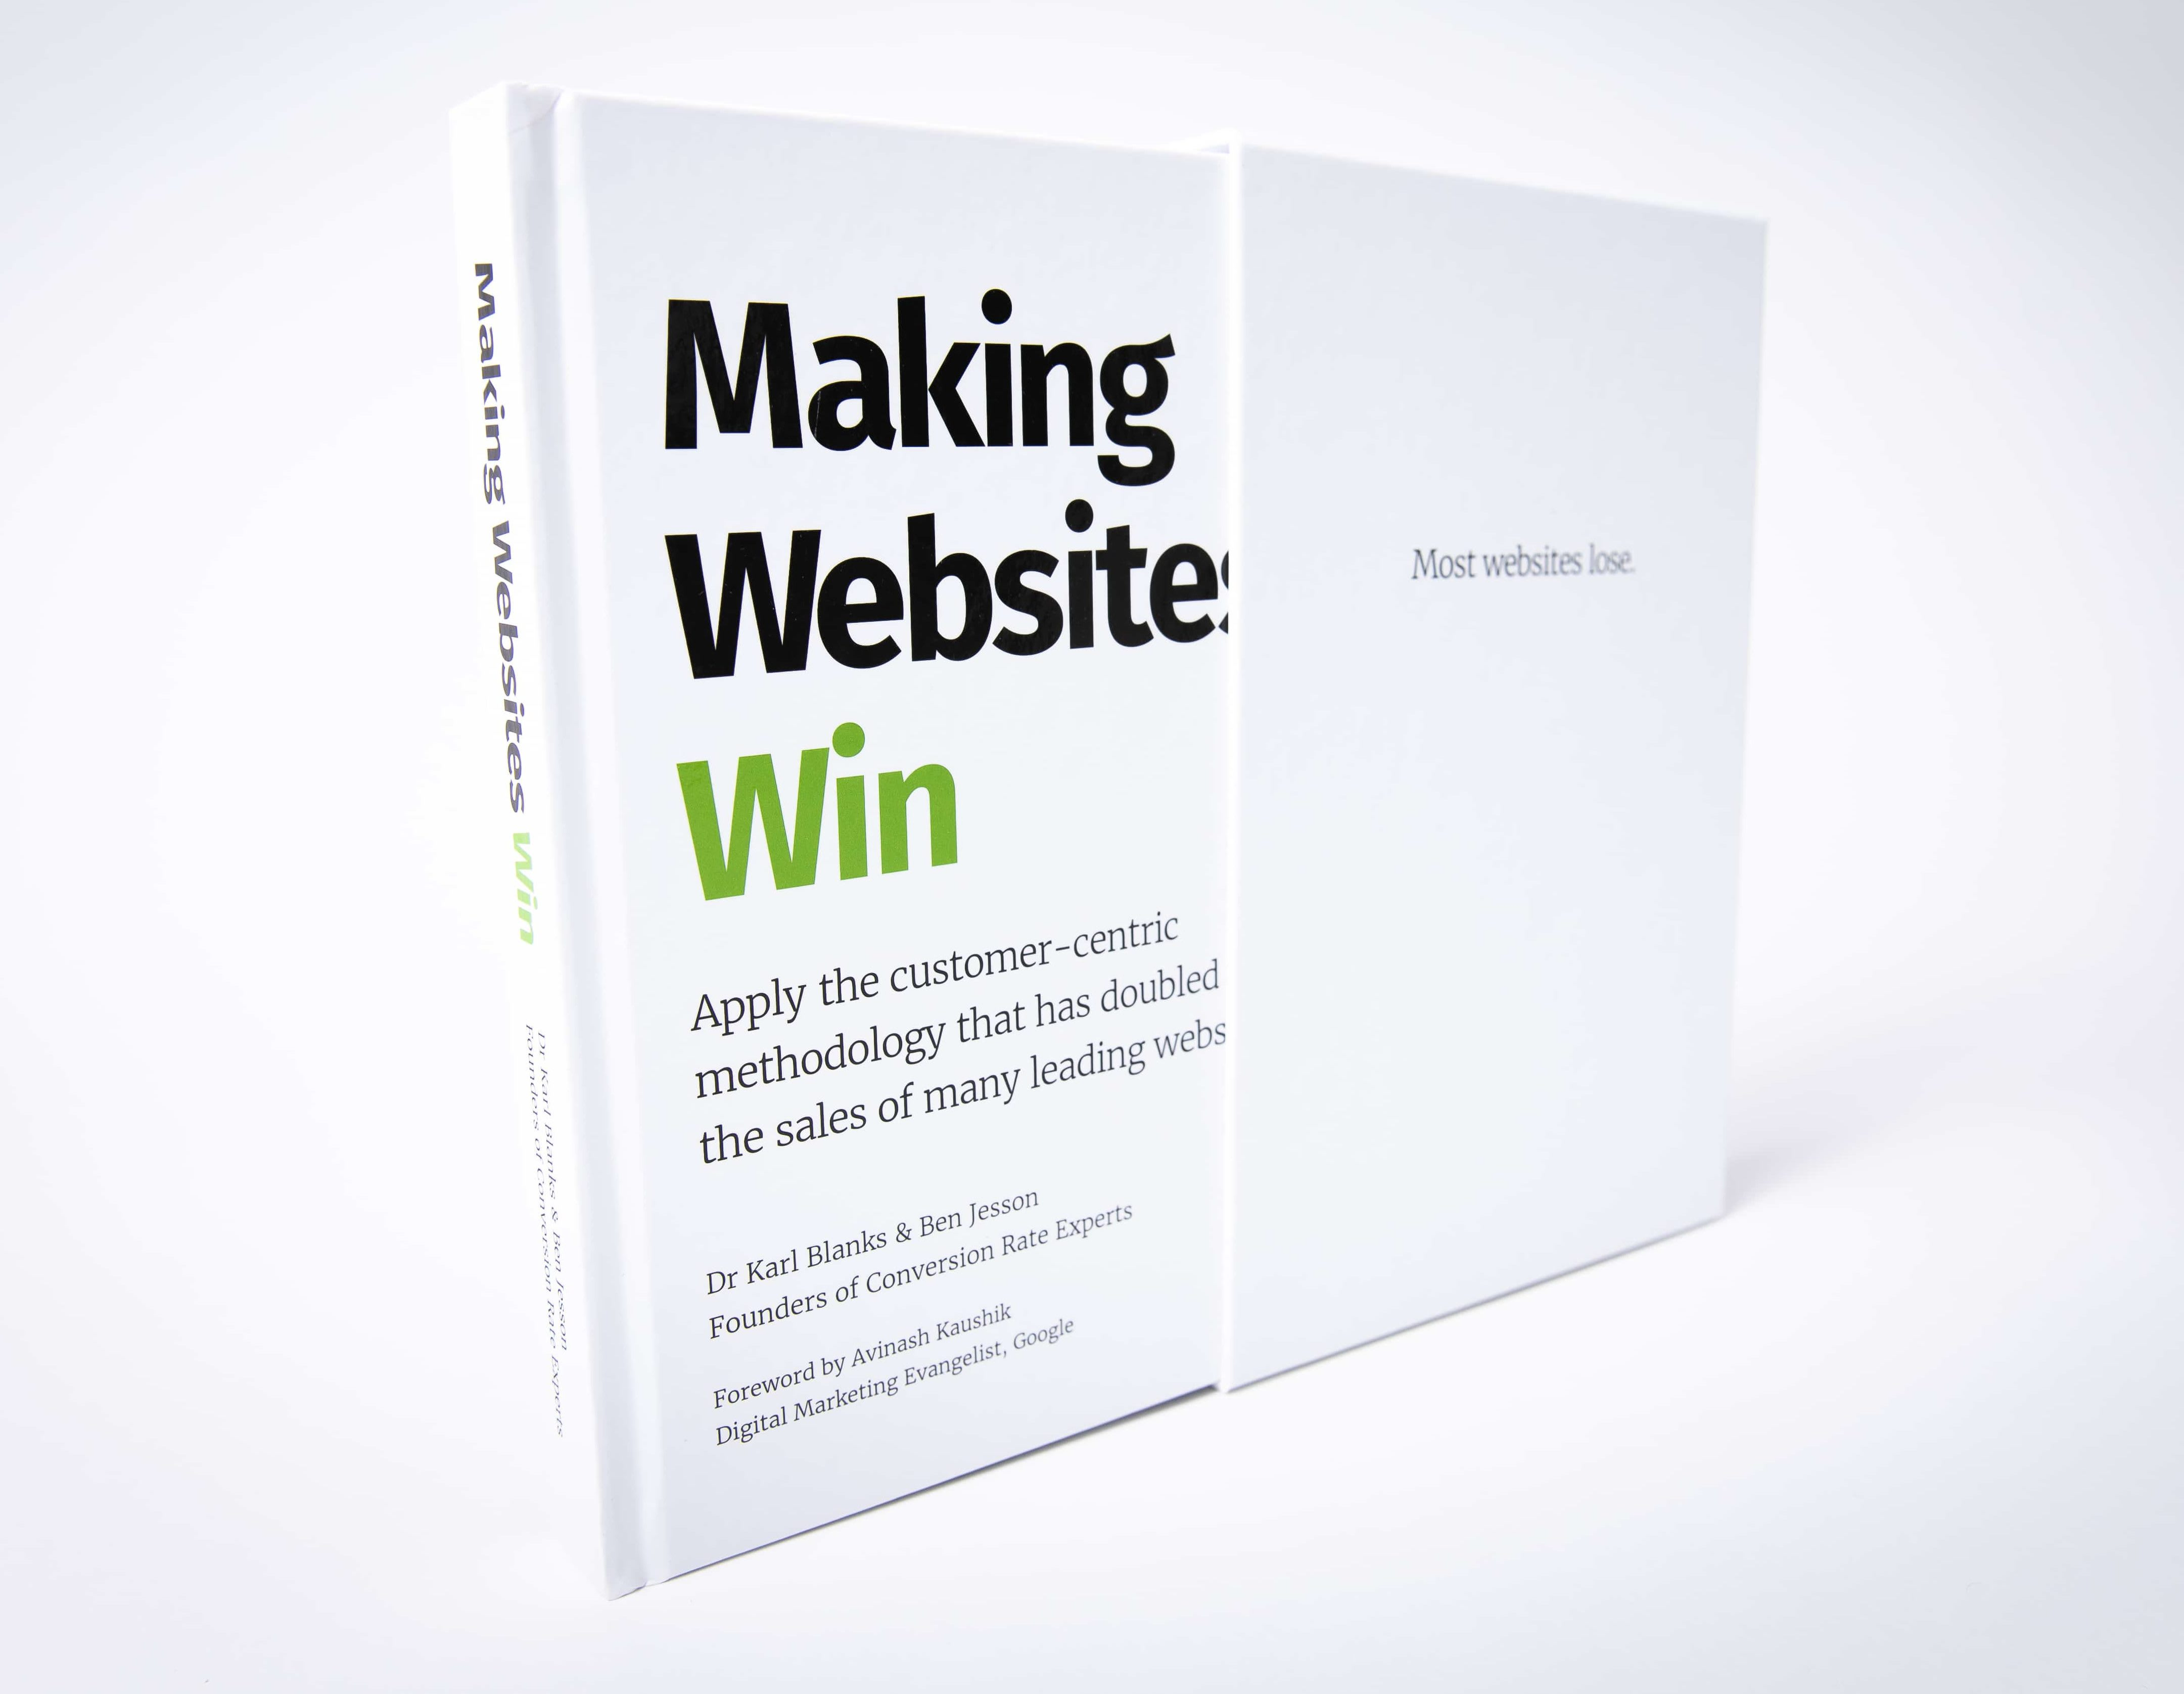 A photo of our book, Making Websites Win